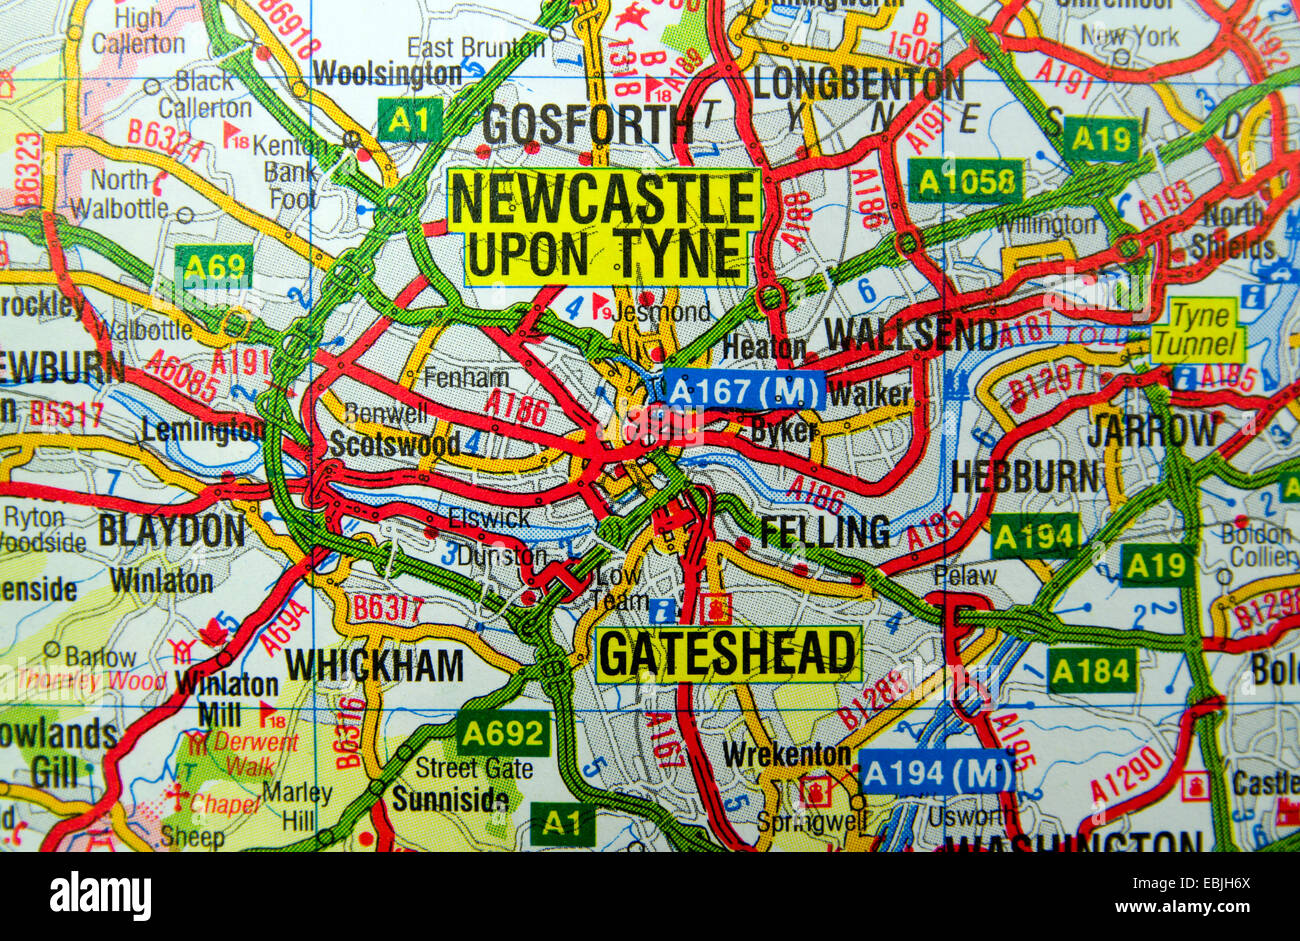 Map Of Newcastle Upon Tyne Road Map of Newcastle Upon Tyne, England Stock Photo: 76011346   Alamy